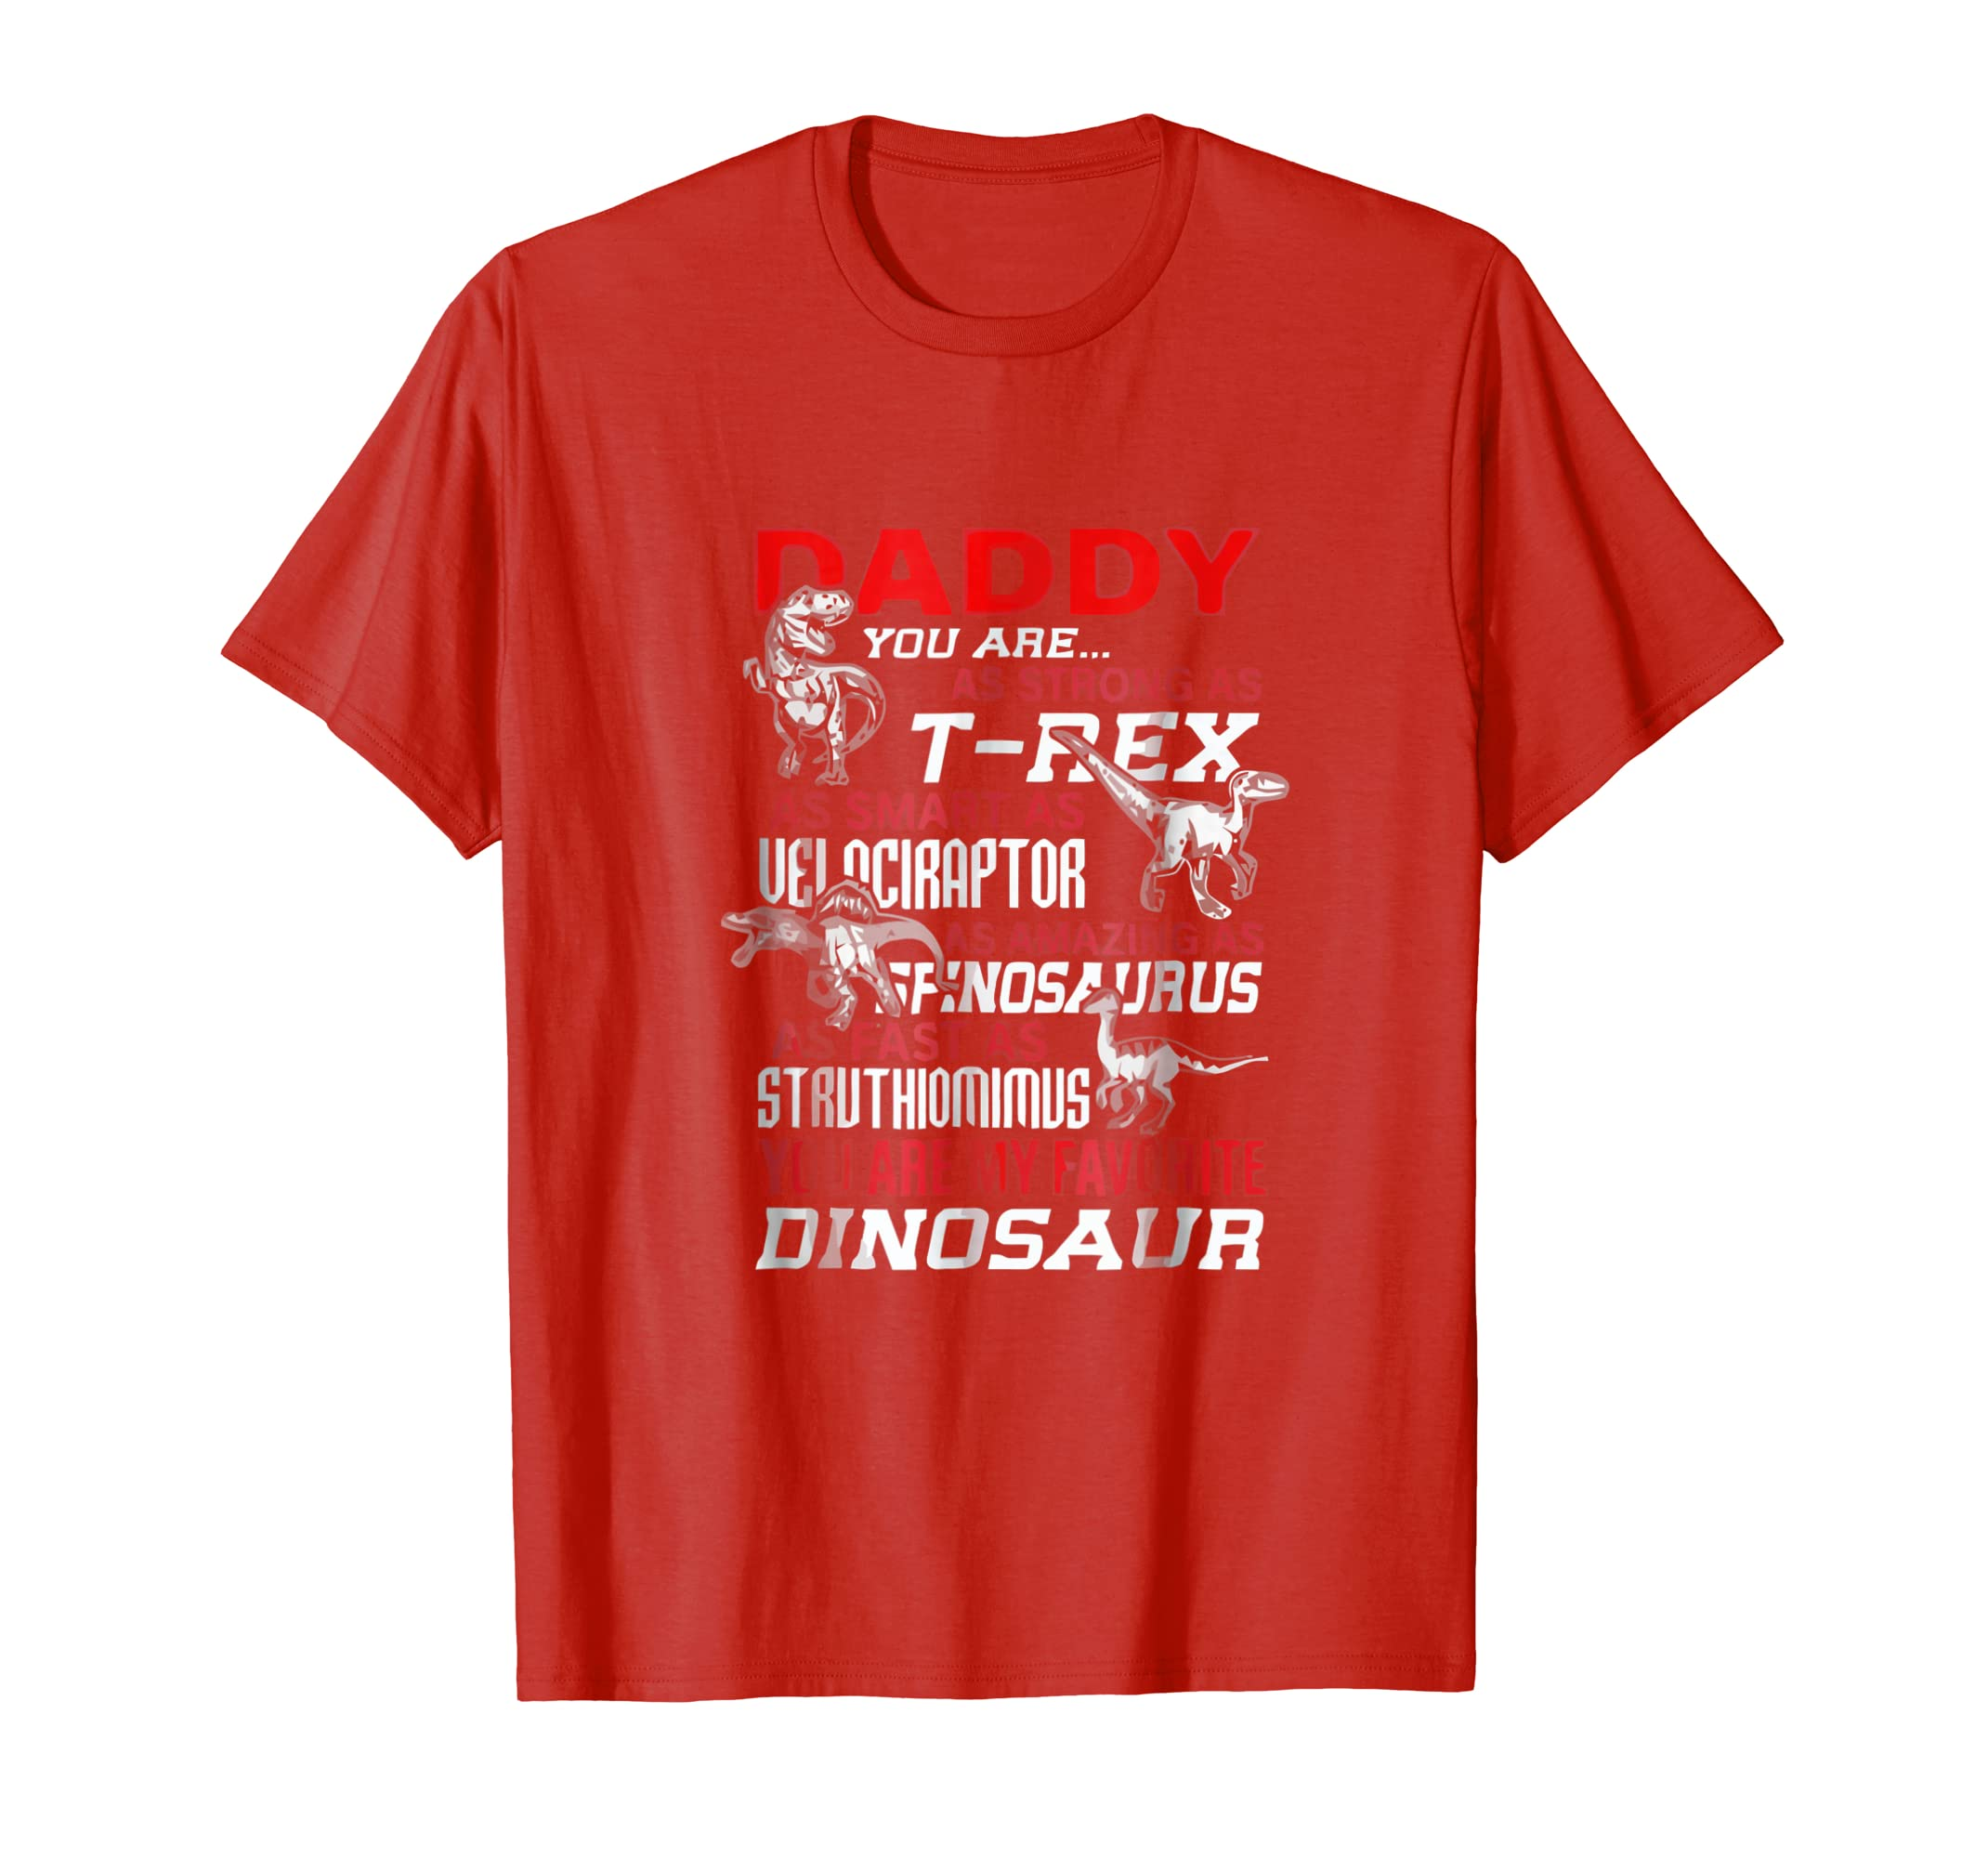 60e4a9f3 Amazon.com: Daddy You're My Favorite Dinosaur tshirt For Father's Day:  Clothing